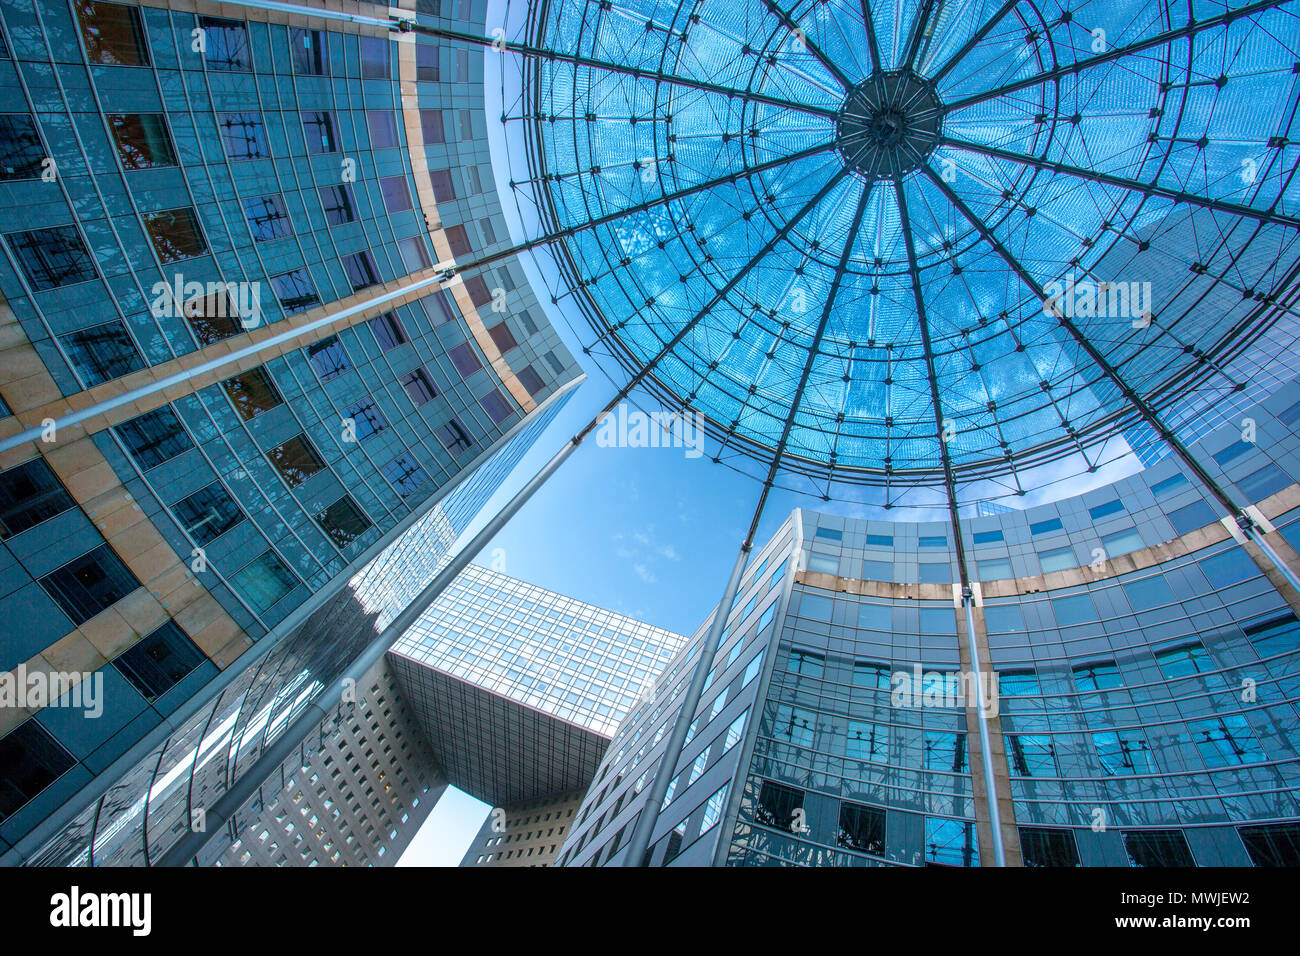 View looking up at modern architecture of La Defense, Paris France Stock Photo